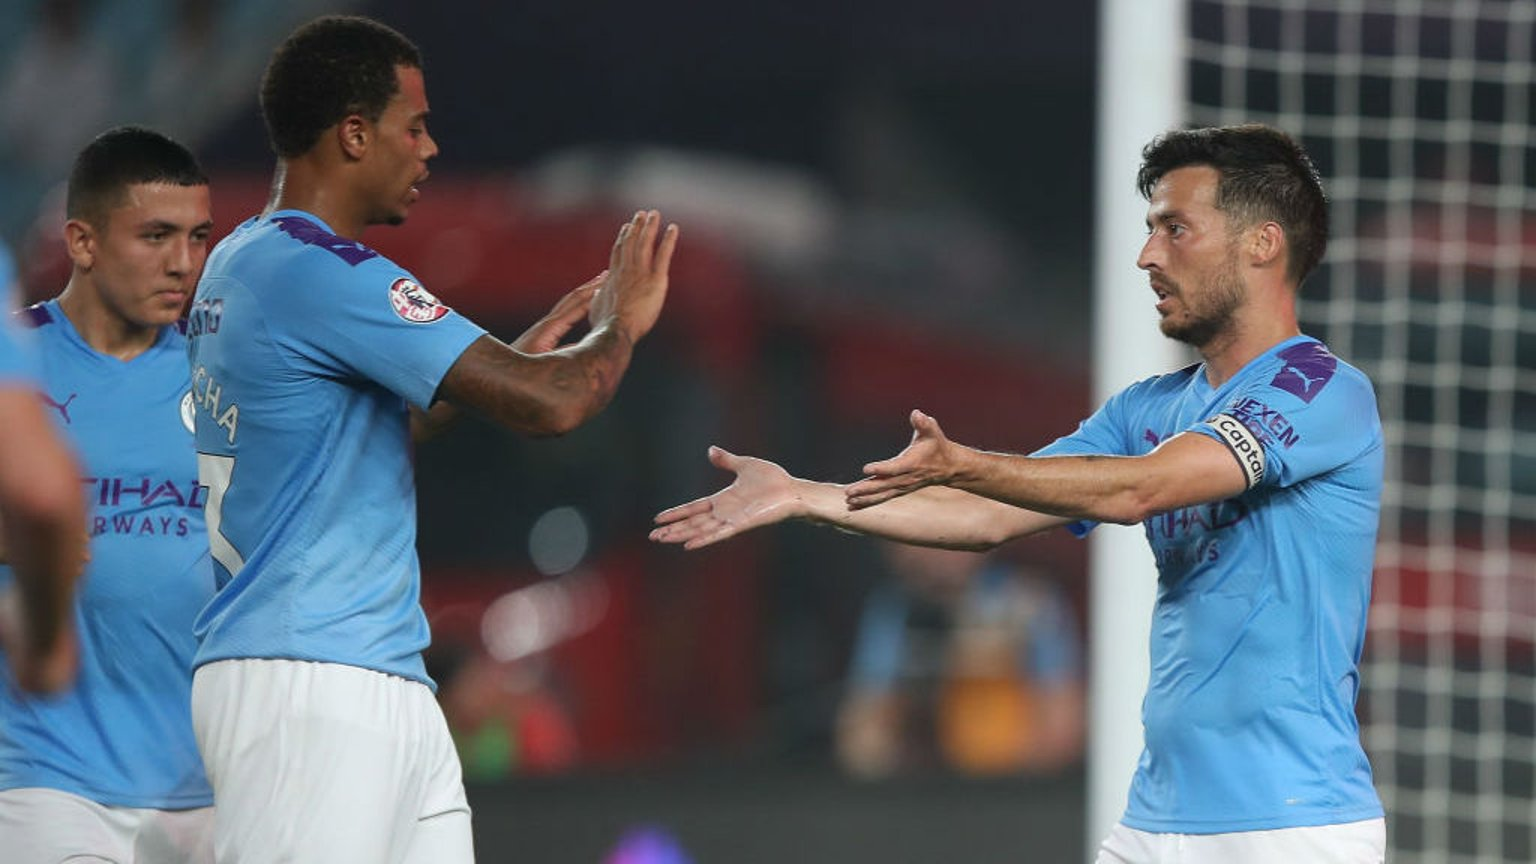 LEVEL BEST: Lukas Nmecha salutes David Silva after Merlin's wonderful goal had brought us back on level terms